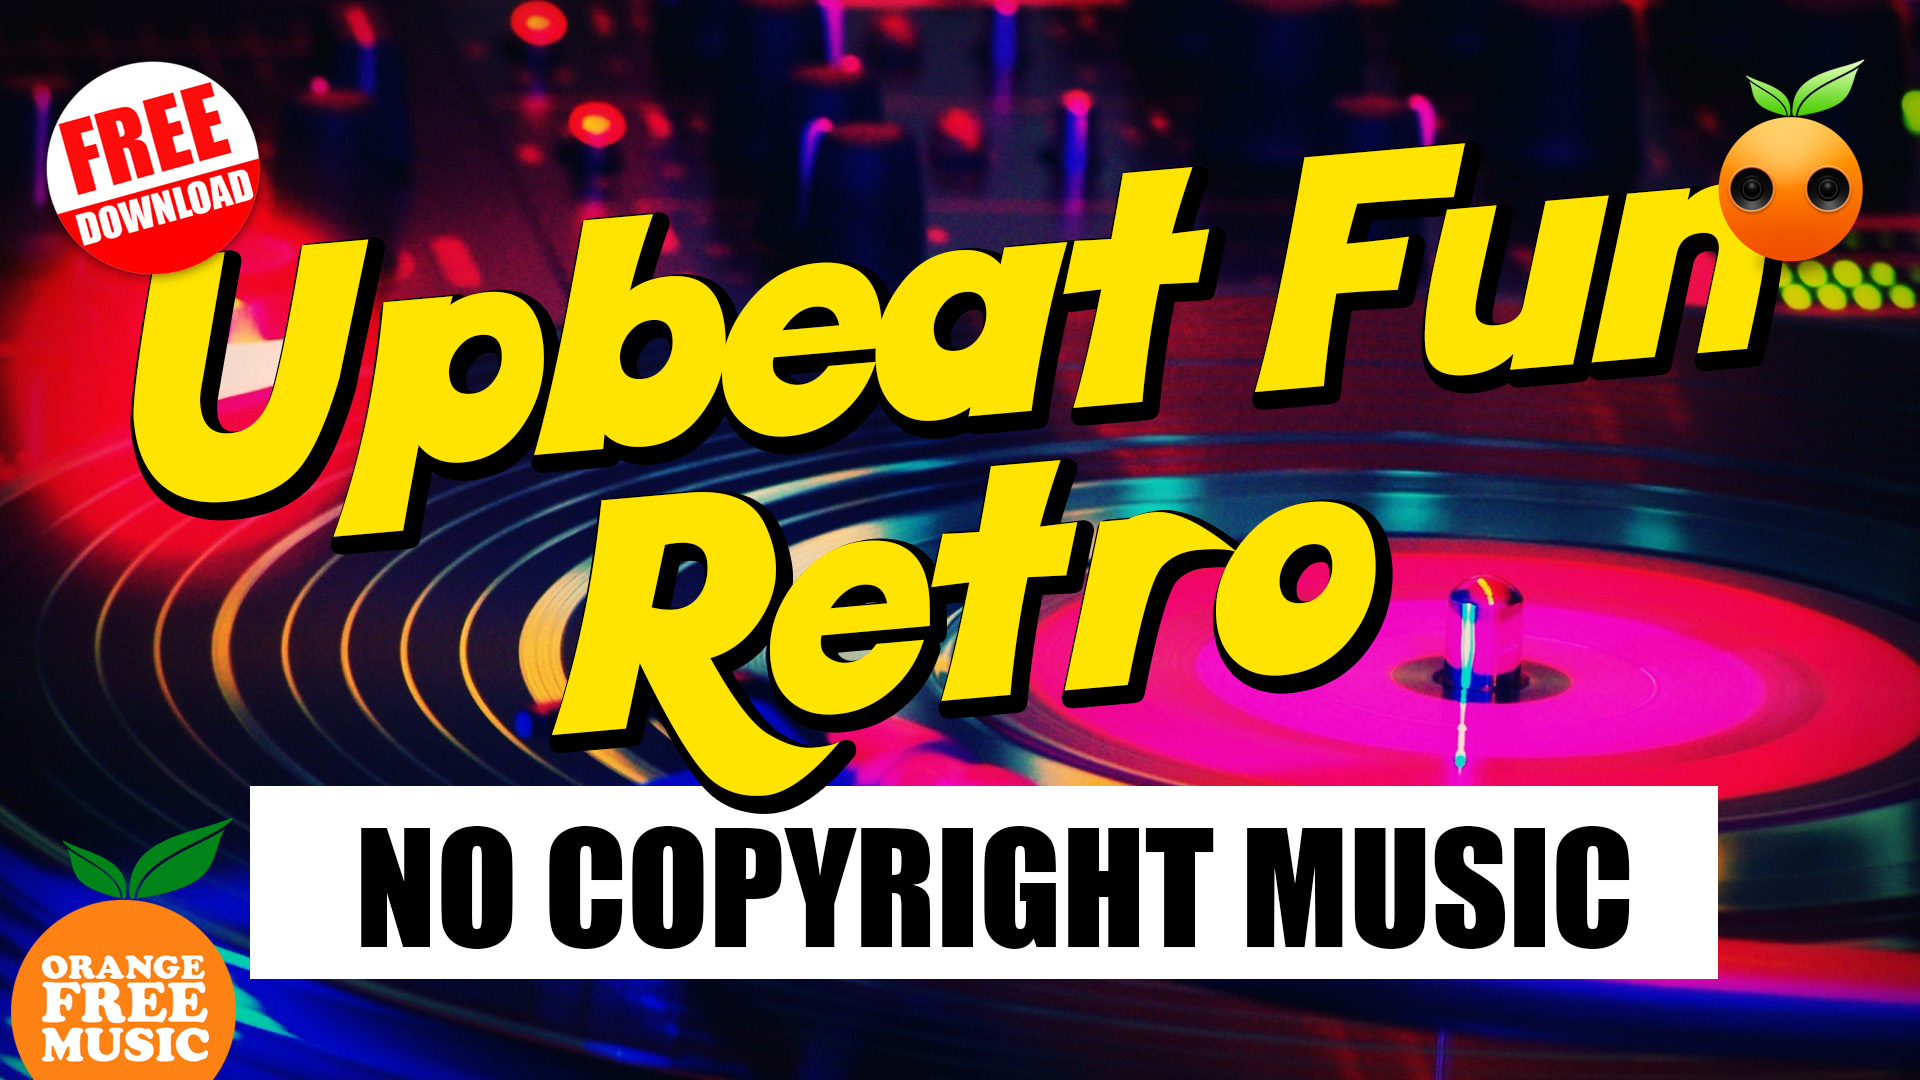 Upbeat Fun Retro - Royalty Free Music | No Copyright | Orange Free Music